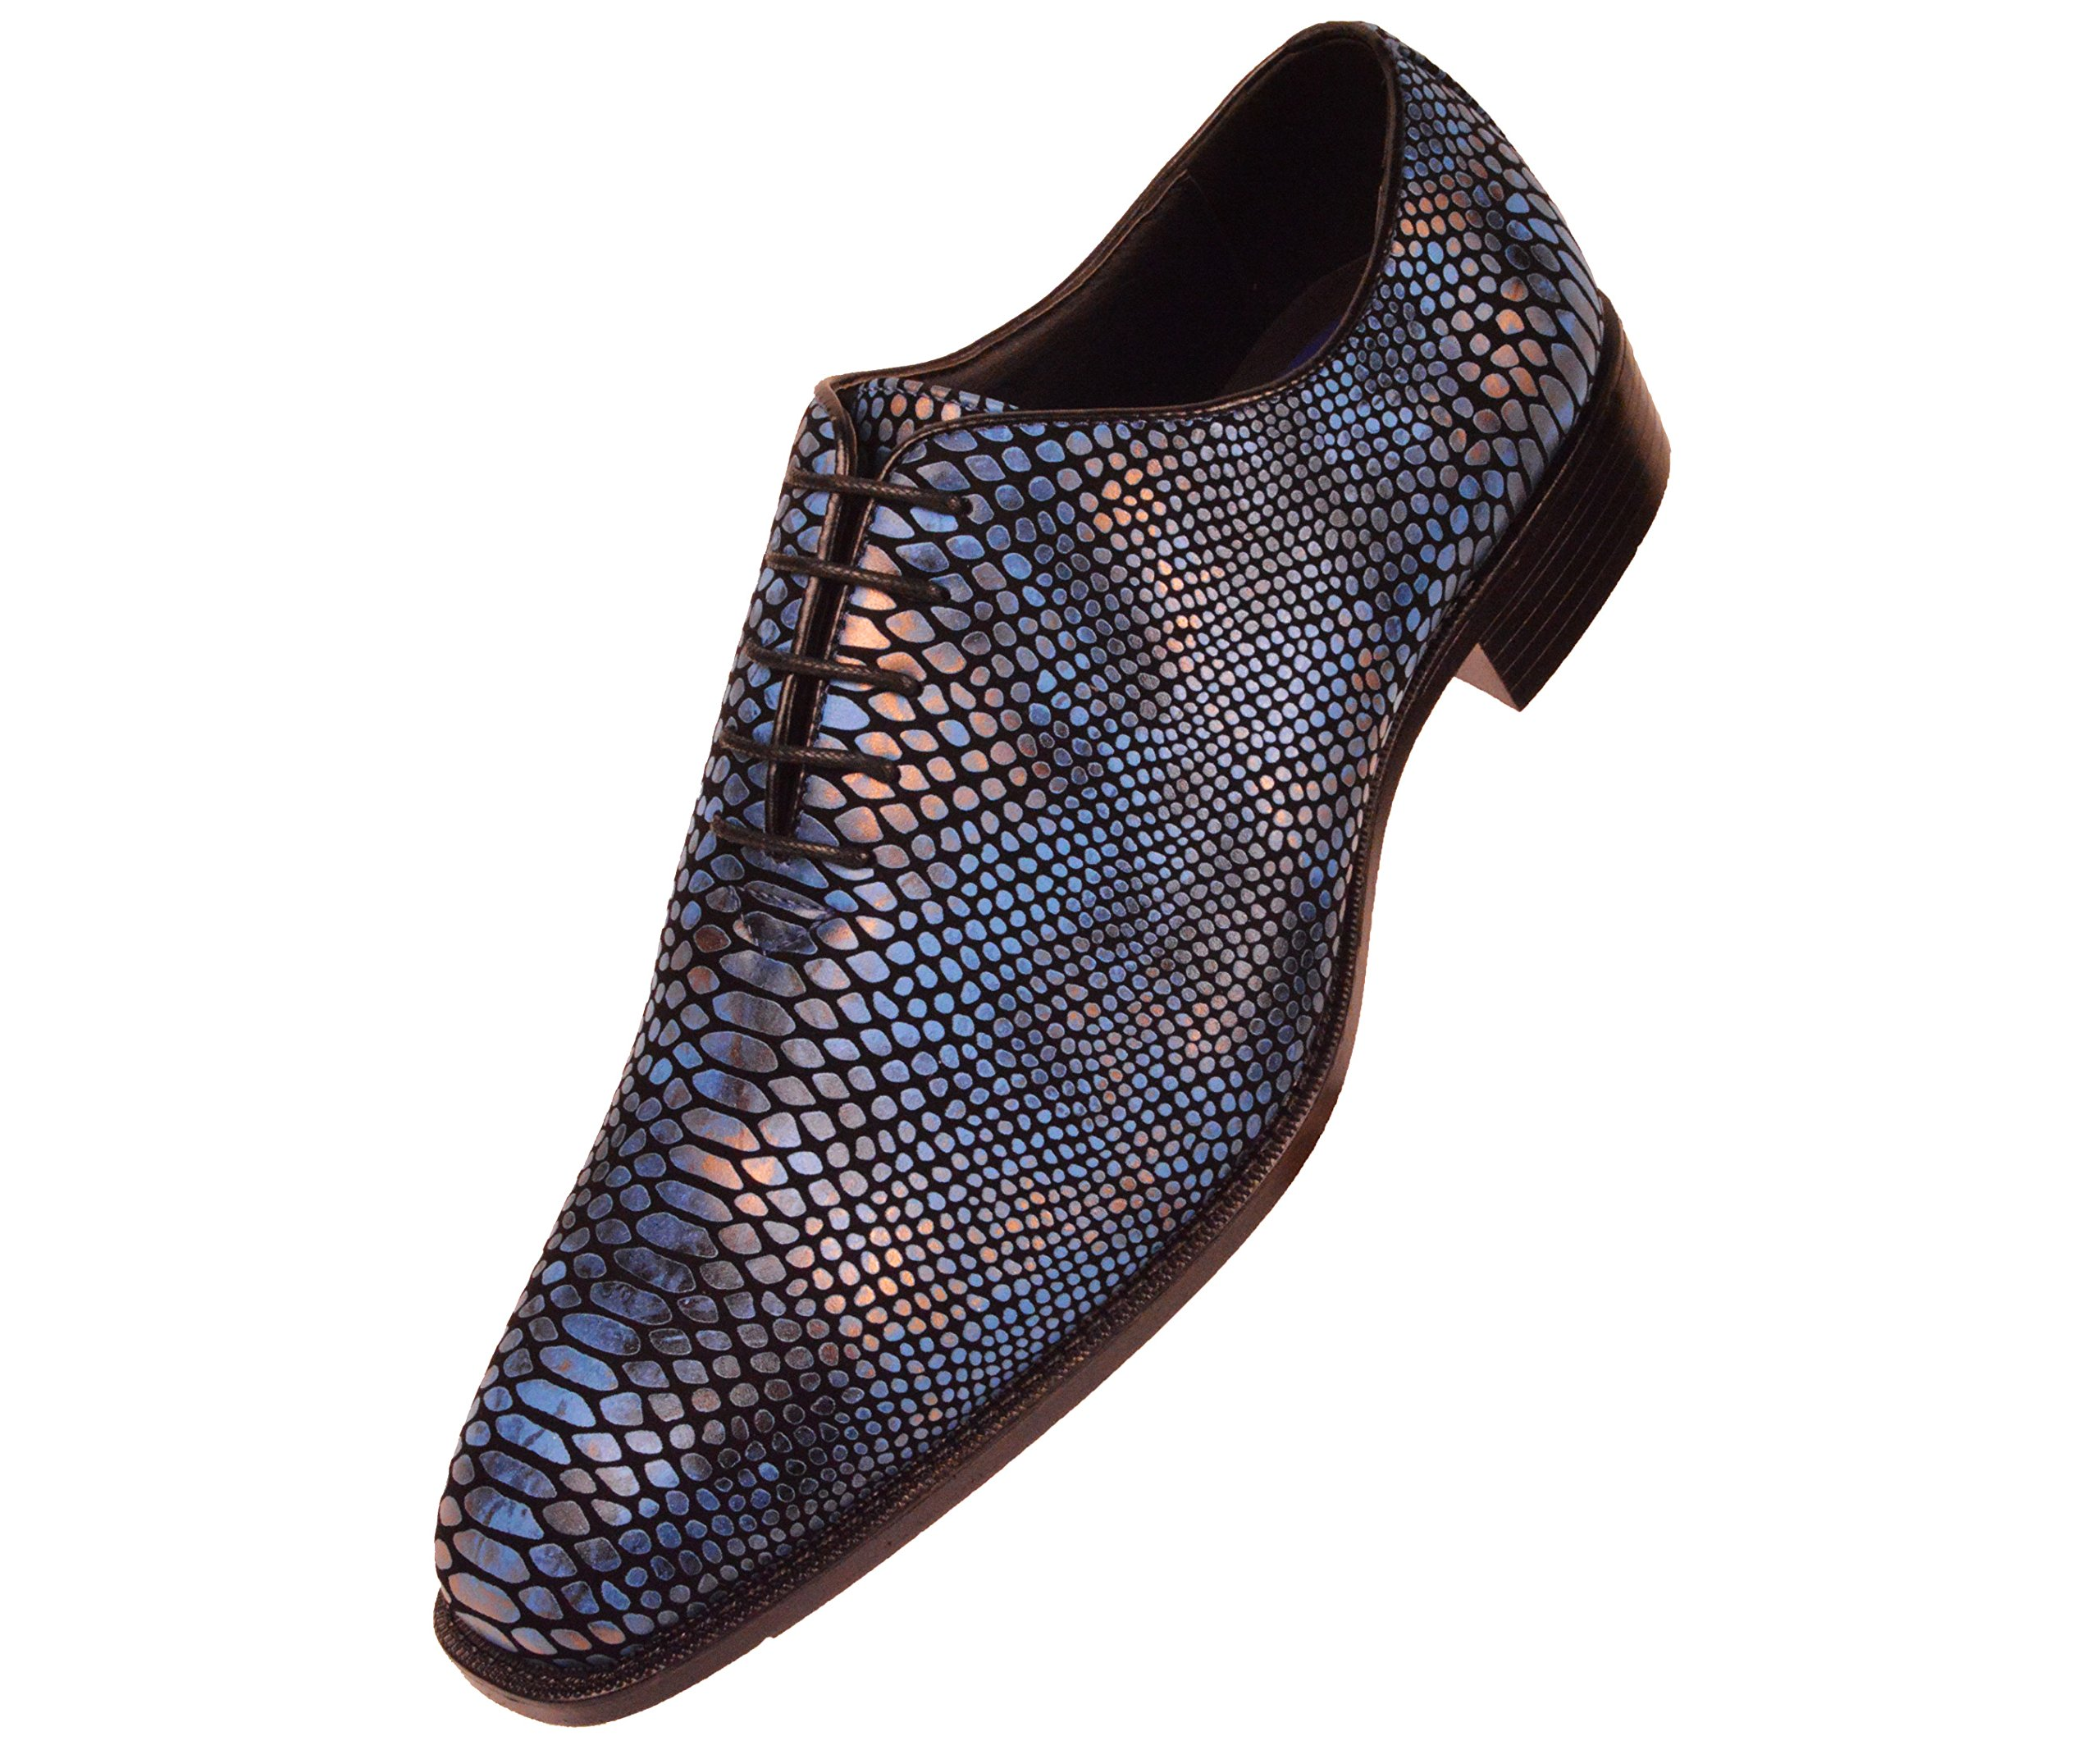 Bolano Mens Exotic Faux Snake Skin Print Oxford Dress Shoe: Style Seabrook